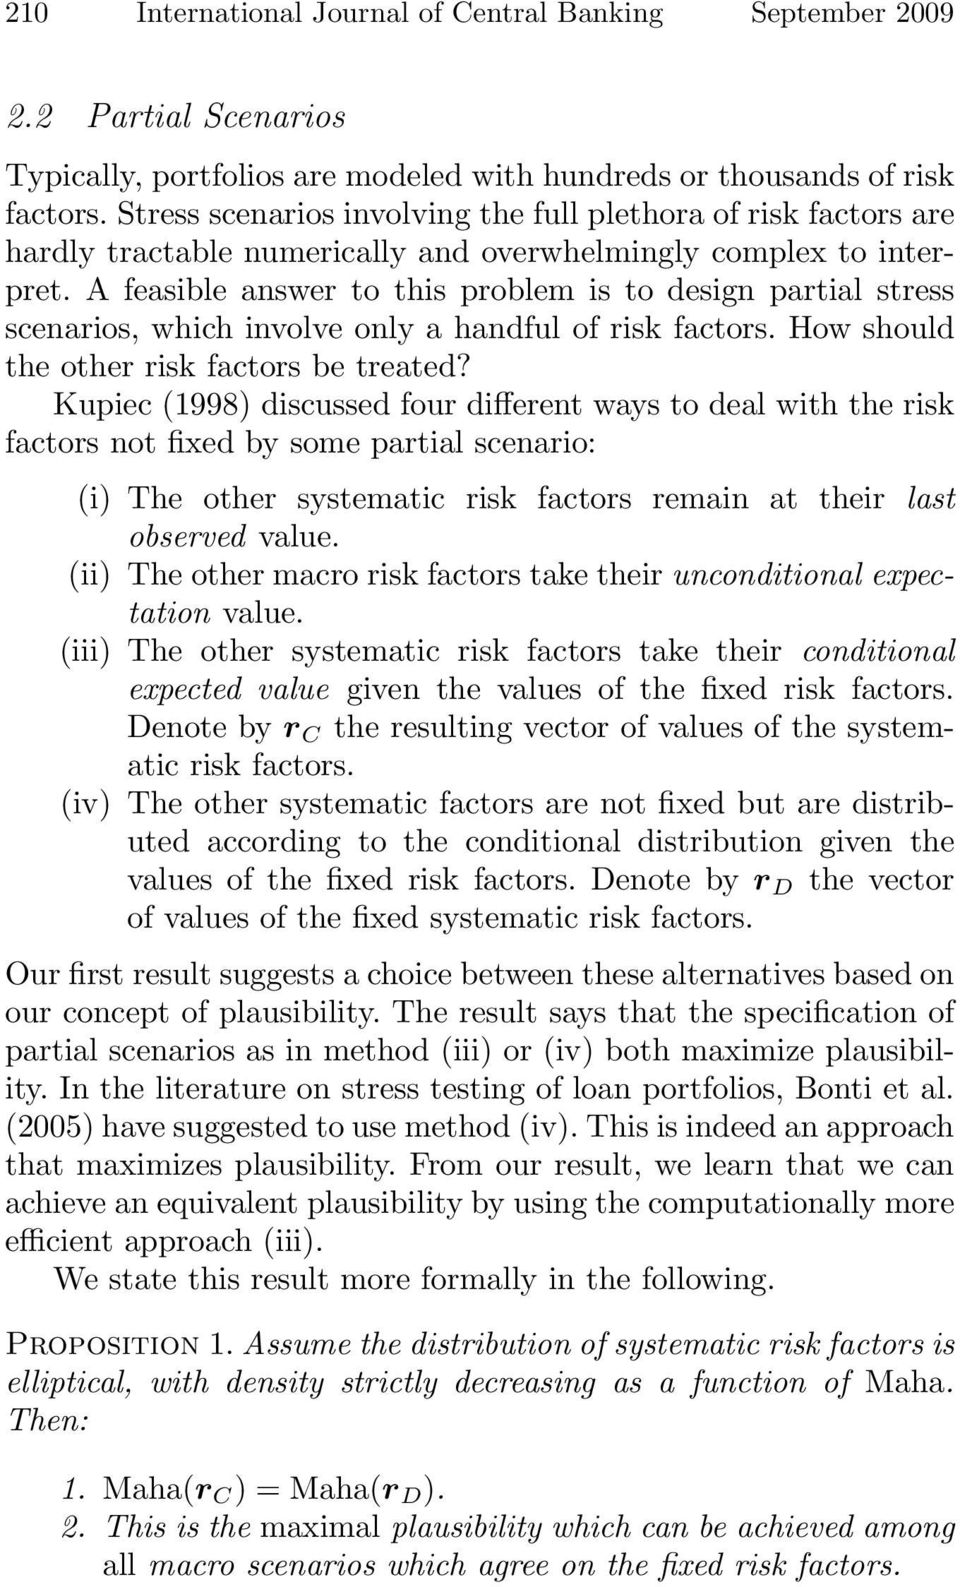 A feasible answer to this problem is to design partial stress scenarios, which involve only a handful of risk factors. How should the other risk factors be treated?